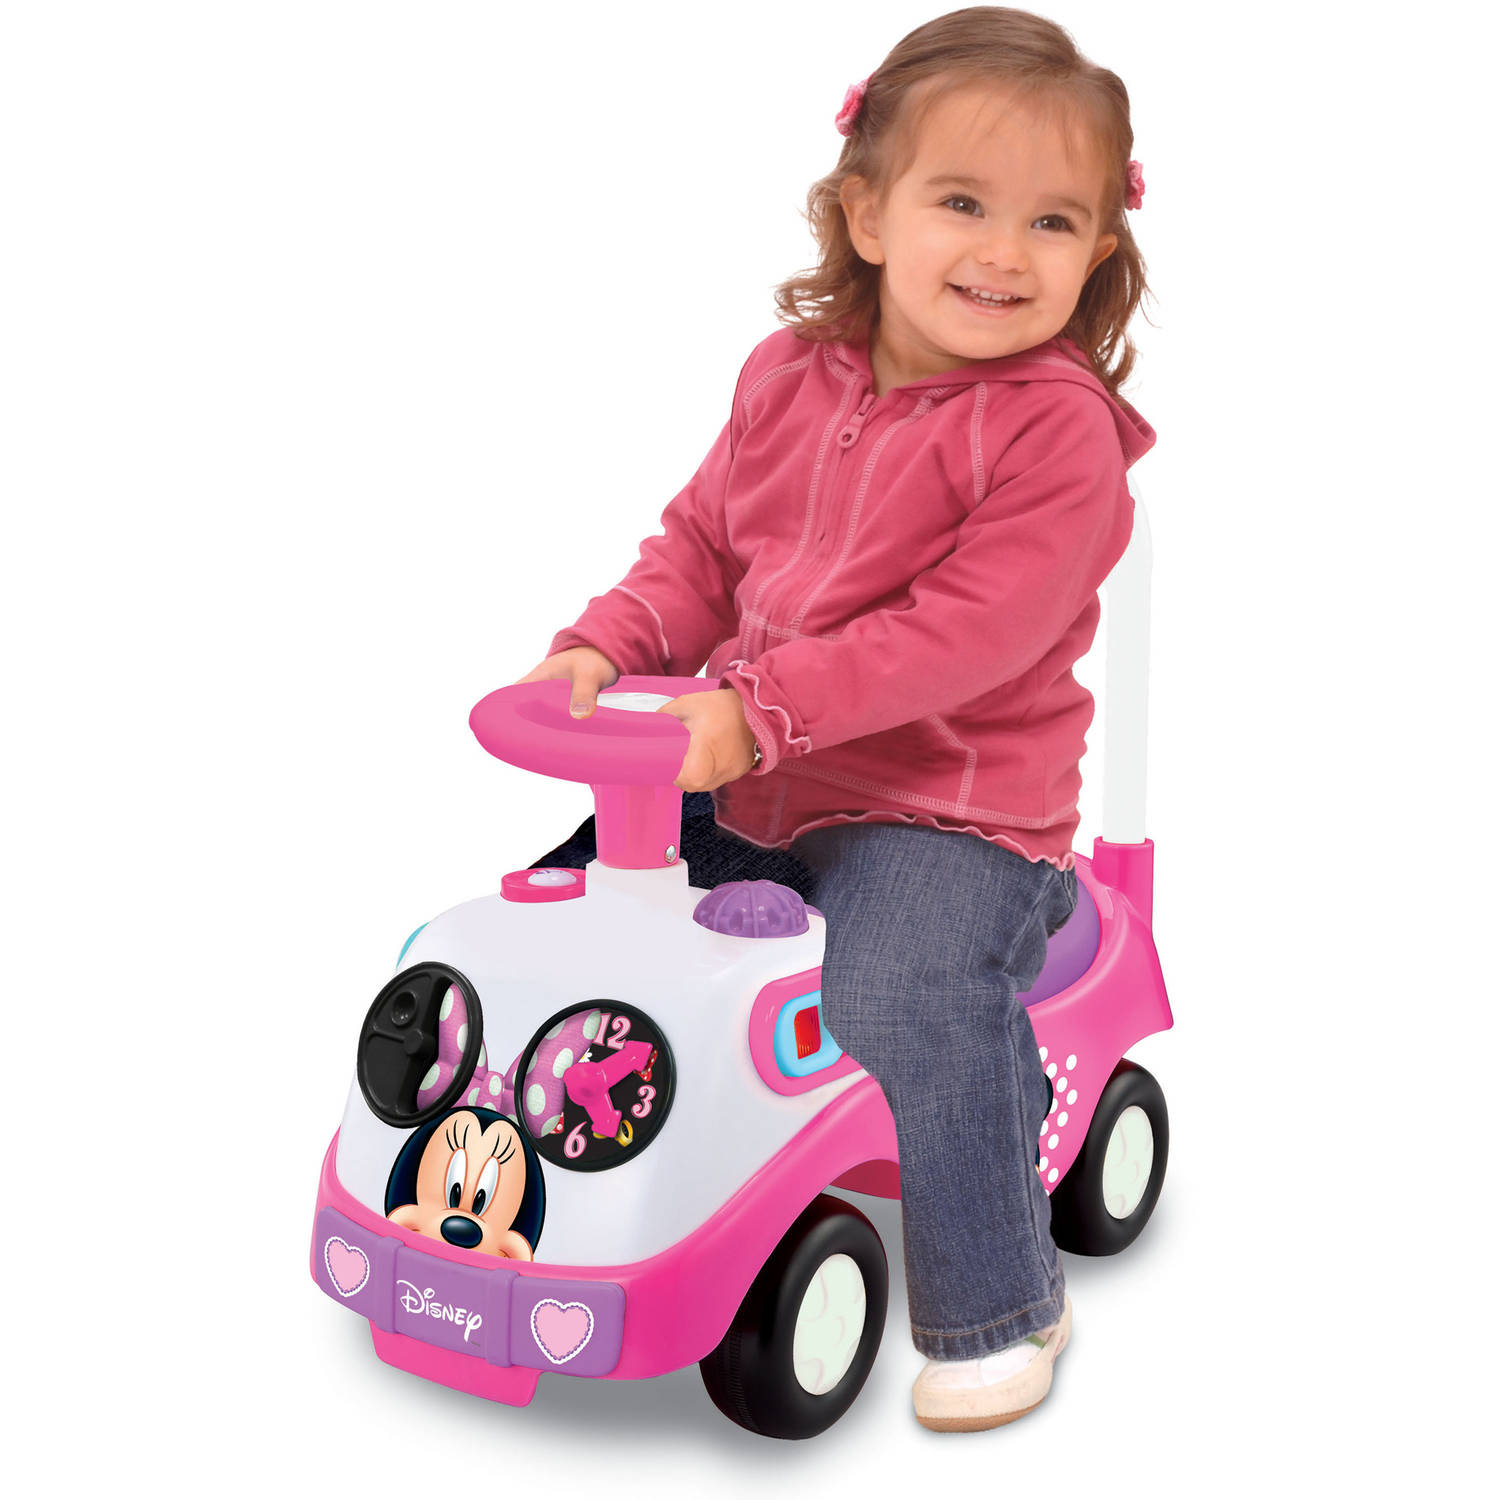 Kid land Disney My First Minnie Mouse Ride Walmart